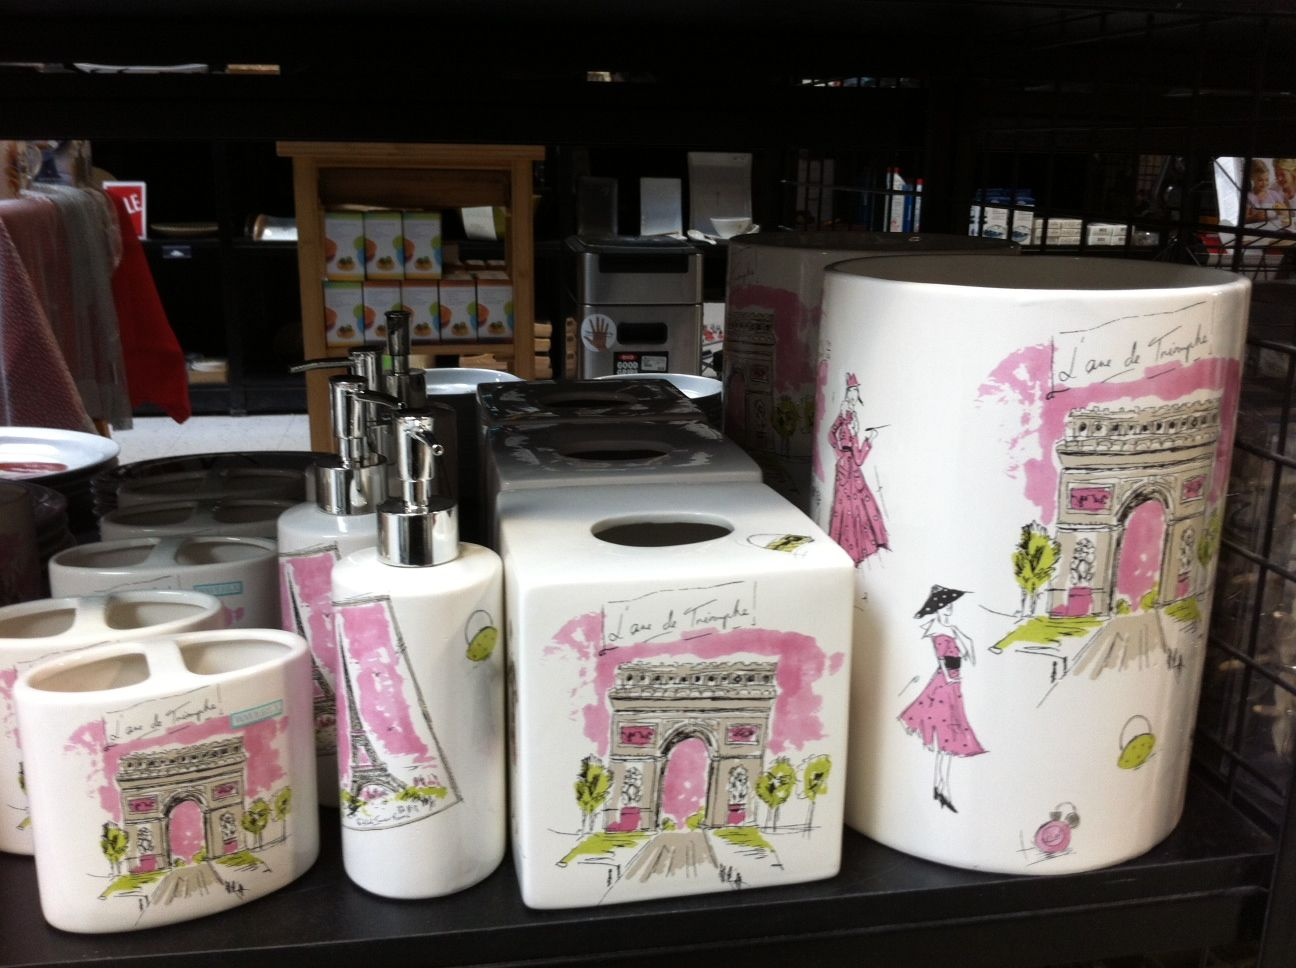 Paris themed bathroom accessories - Pink Spring Green White Paris Themed Bathroom Accessories From Linen Chest Ottawa